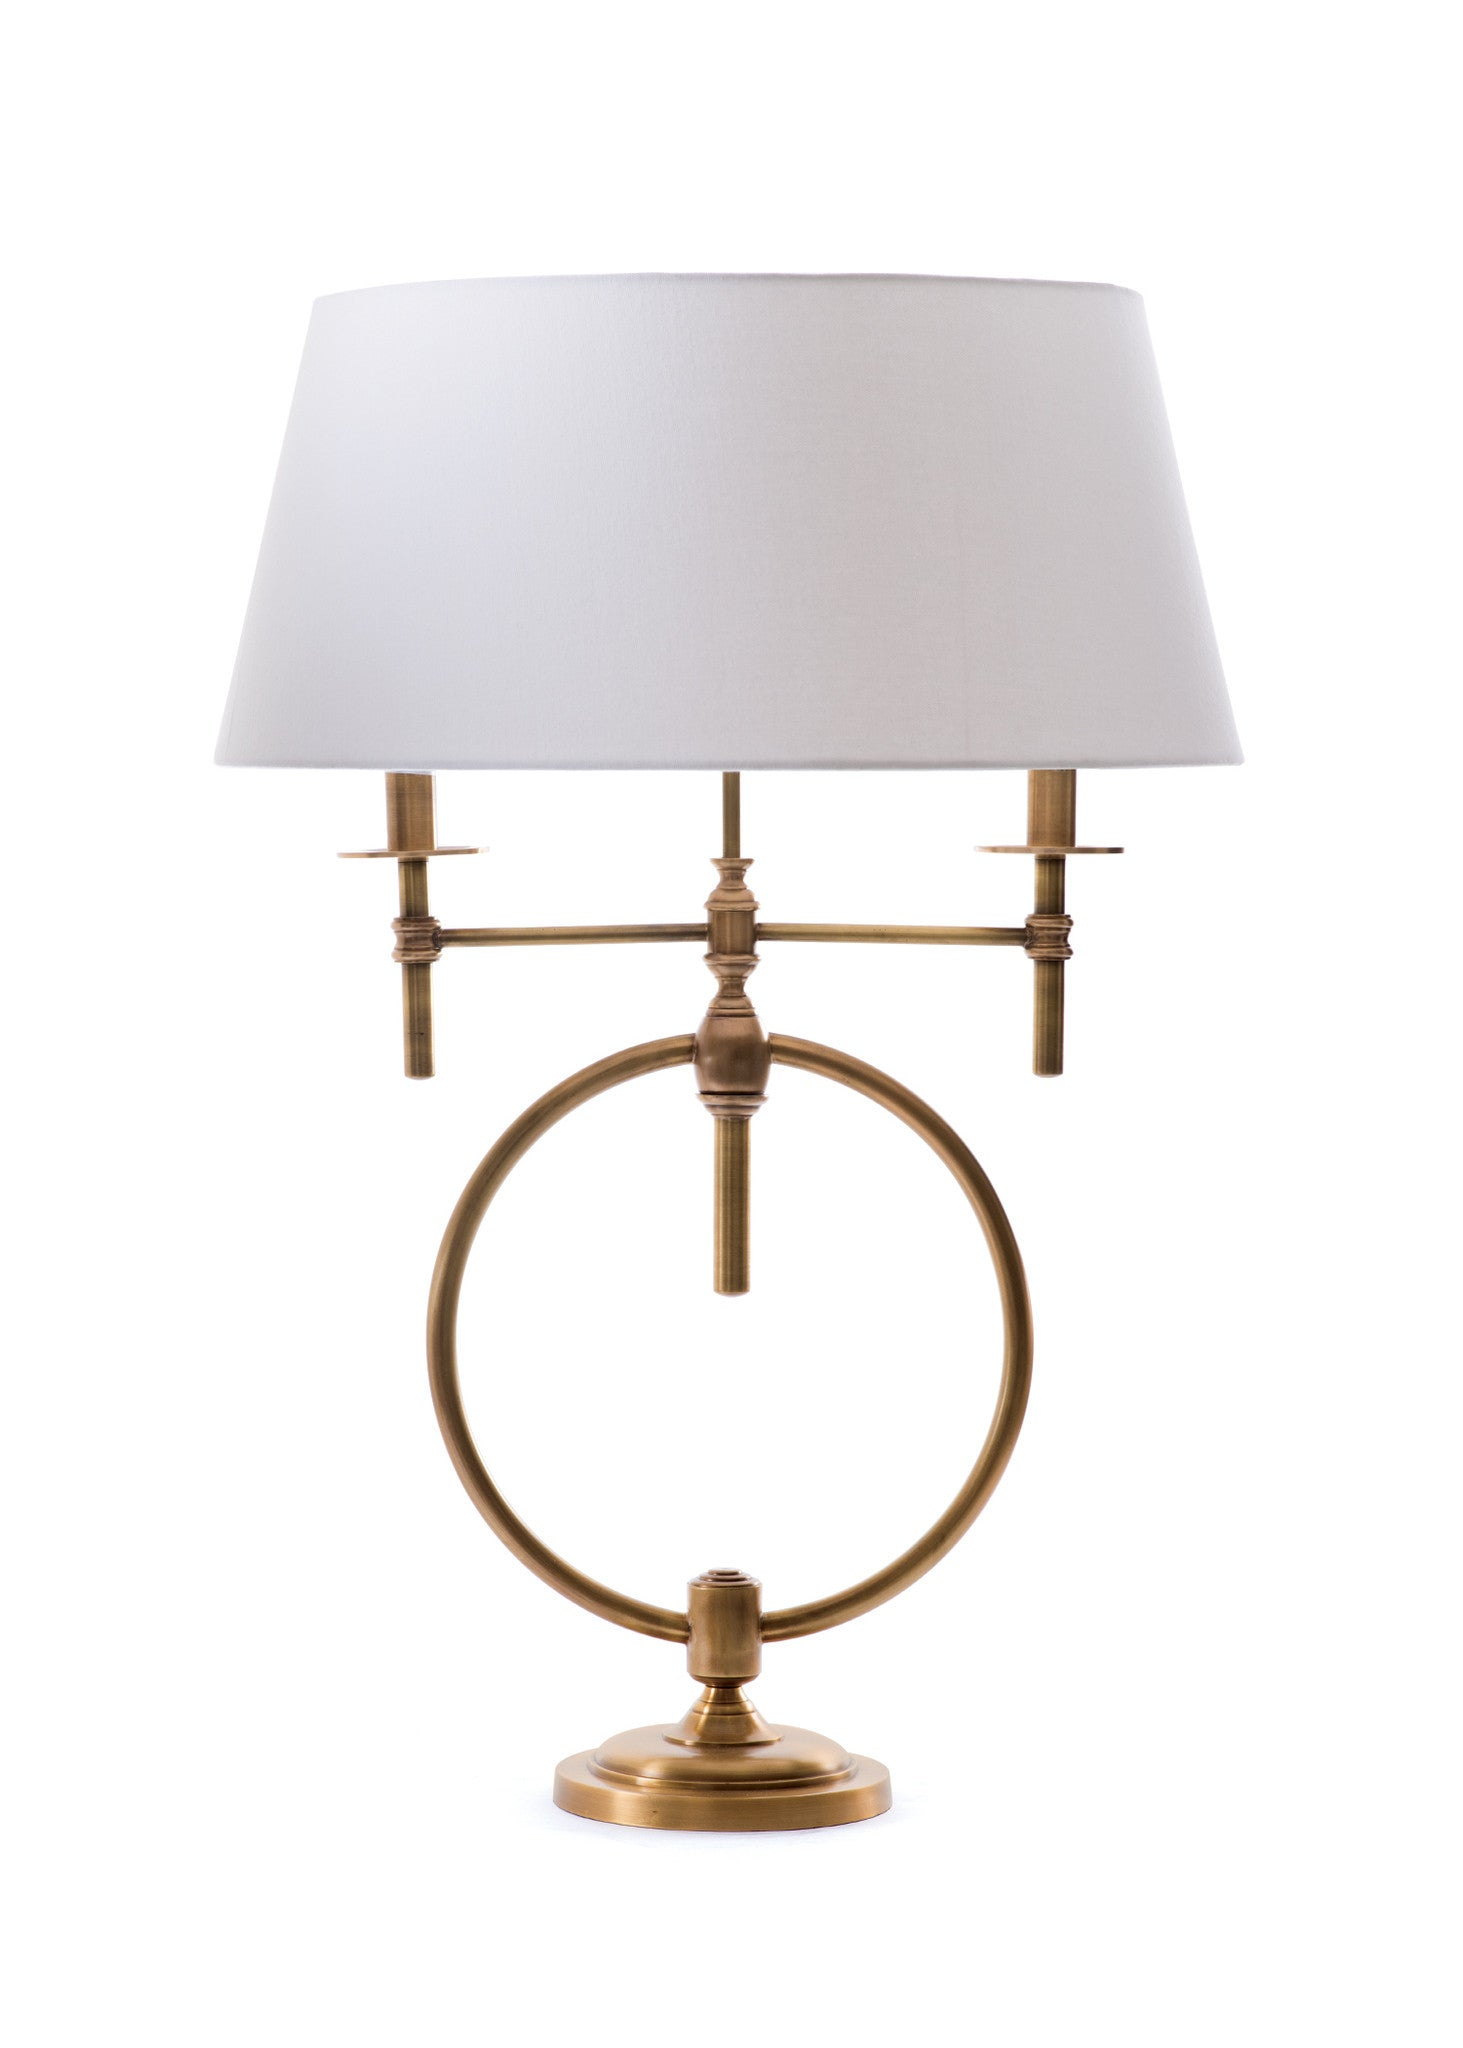 Modern contemporary rustic vintage industrial lighting alan decor anello table lamp in aged brass with fabric shade table lamps alan decor geotapseo Image collections